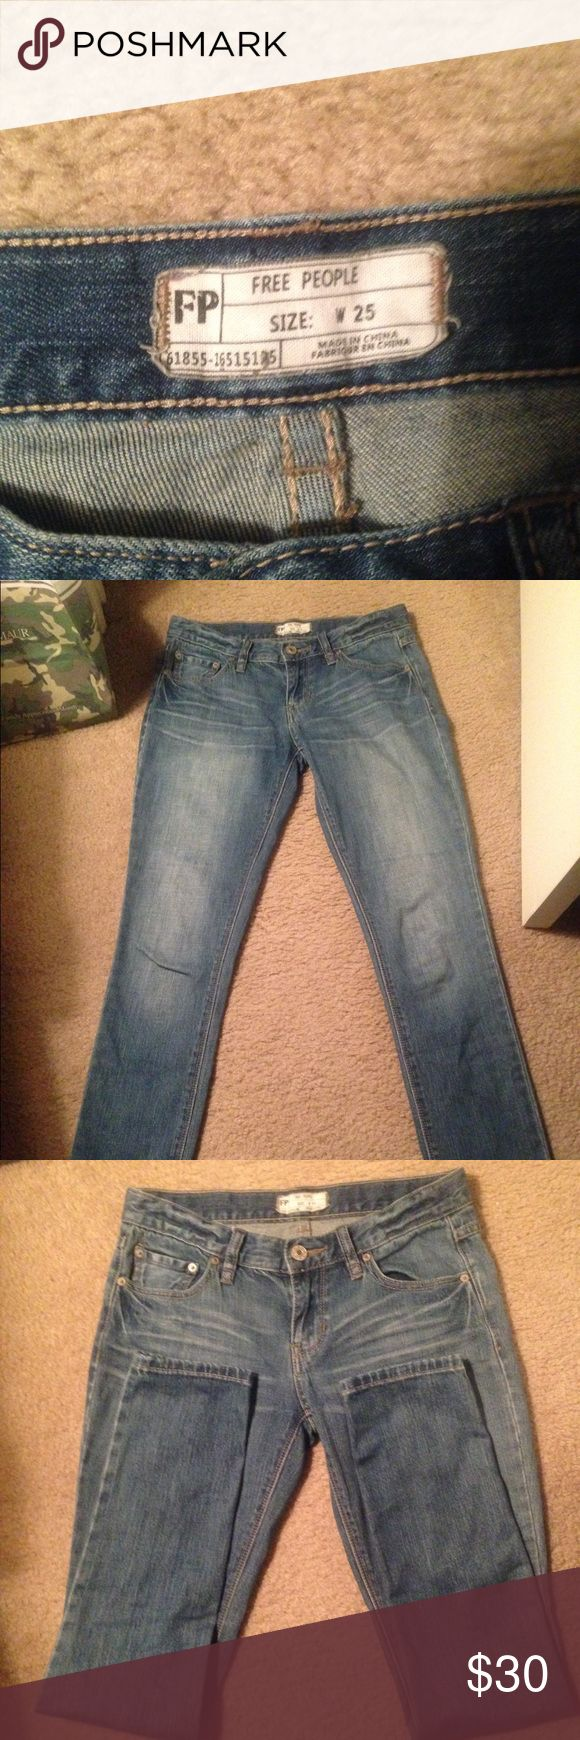 💕💕Free People Jeans💕💕 Gently used Free People jeans. No distress with a medium light wash. Great everyday jeans. Size 25 inch waist and inseam is around 29-30 inches. Free People Jeans Skinny